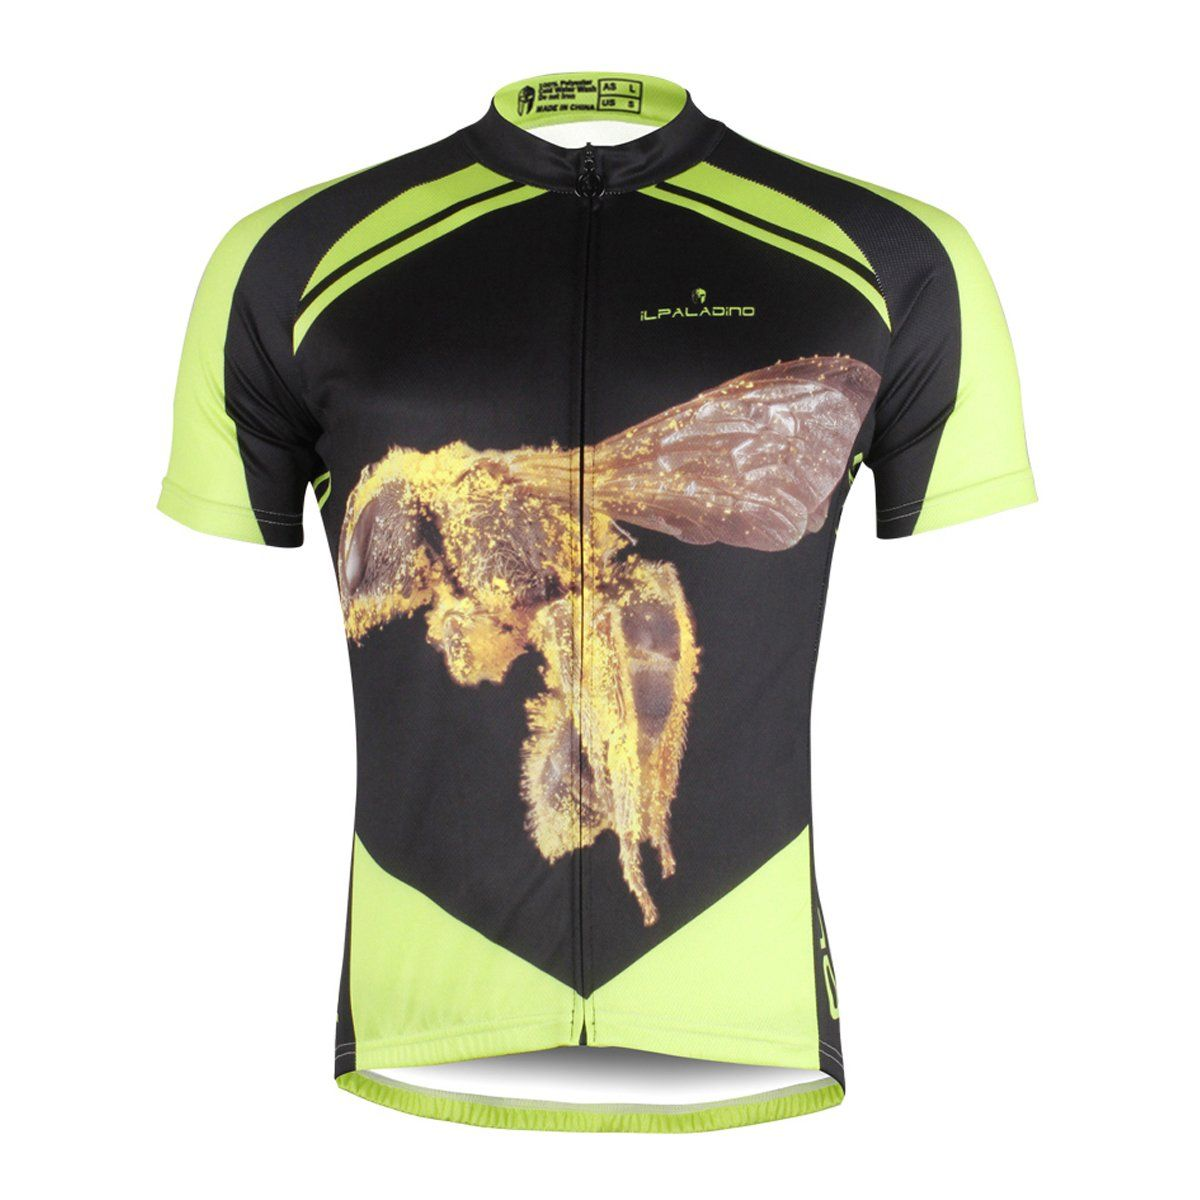 ILPALADINO Men s Summer Cycling Jersey Rock Big Hornet Road Bike Shirt  Breathable and Quick Dry Mountain Biking Clothes 3b9e5066d